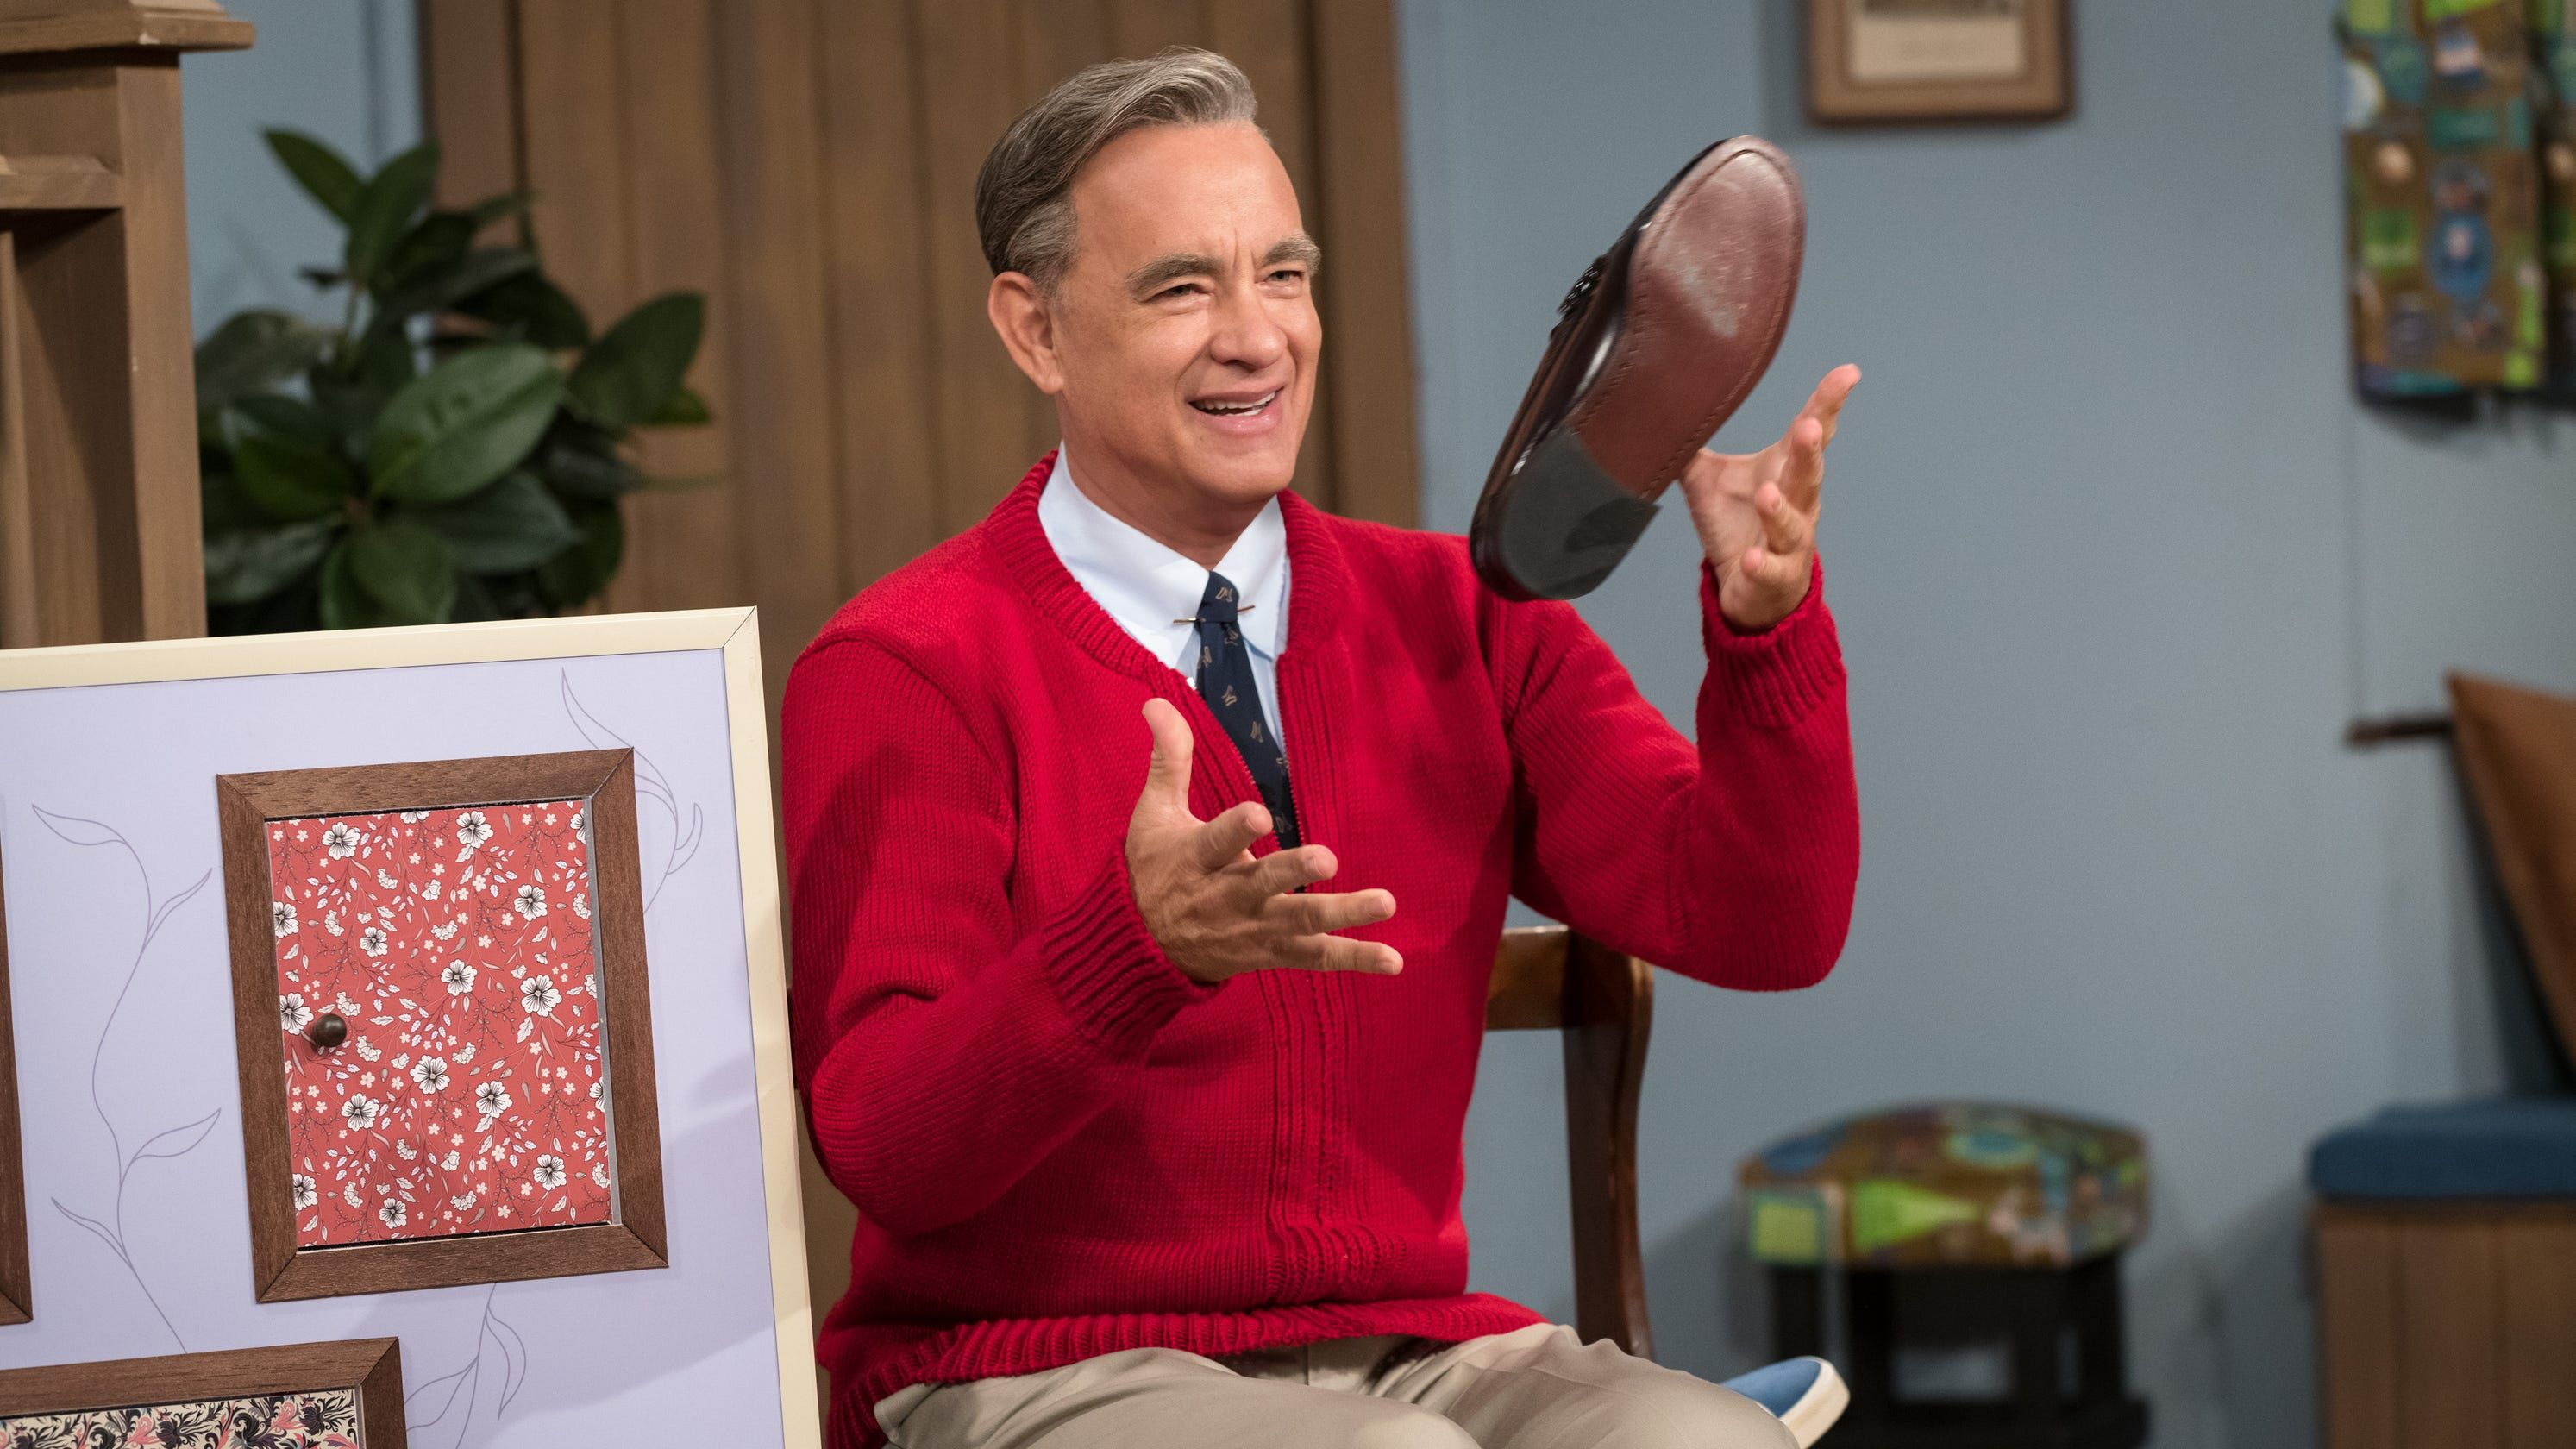 Tom Hanks Feels So Right As Mr Rogers Giving A Lesson In Forgiveness In A Beautiful Day Tom Hanks Tom Hanks Movies Fred Rogers